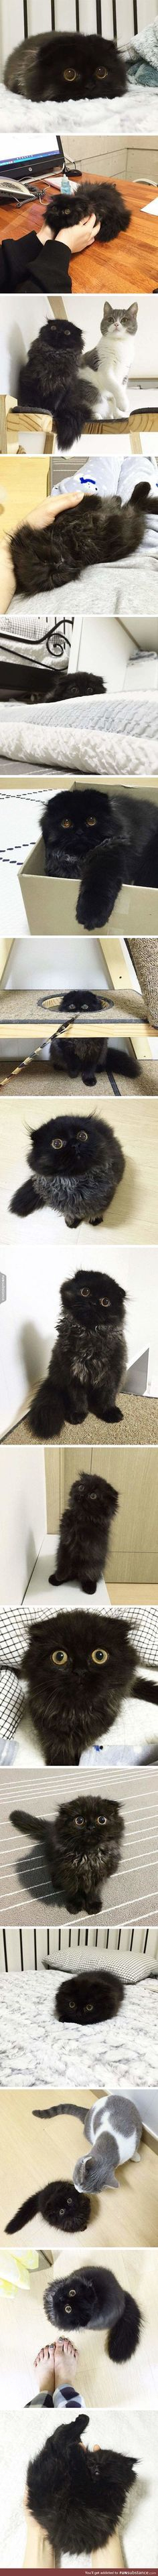 It's a tribble-kitty!